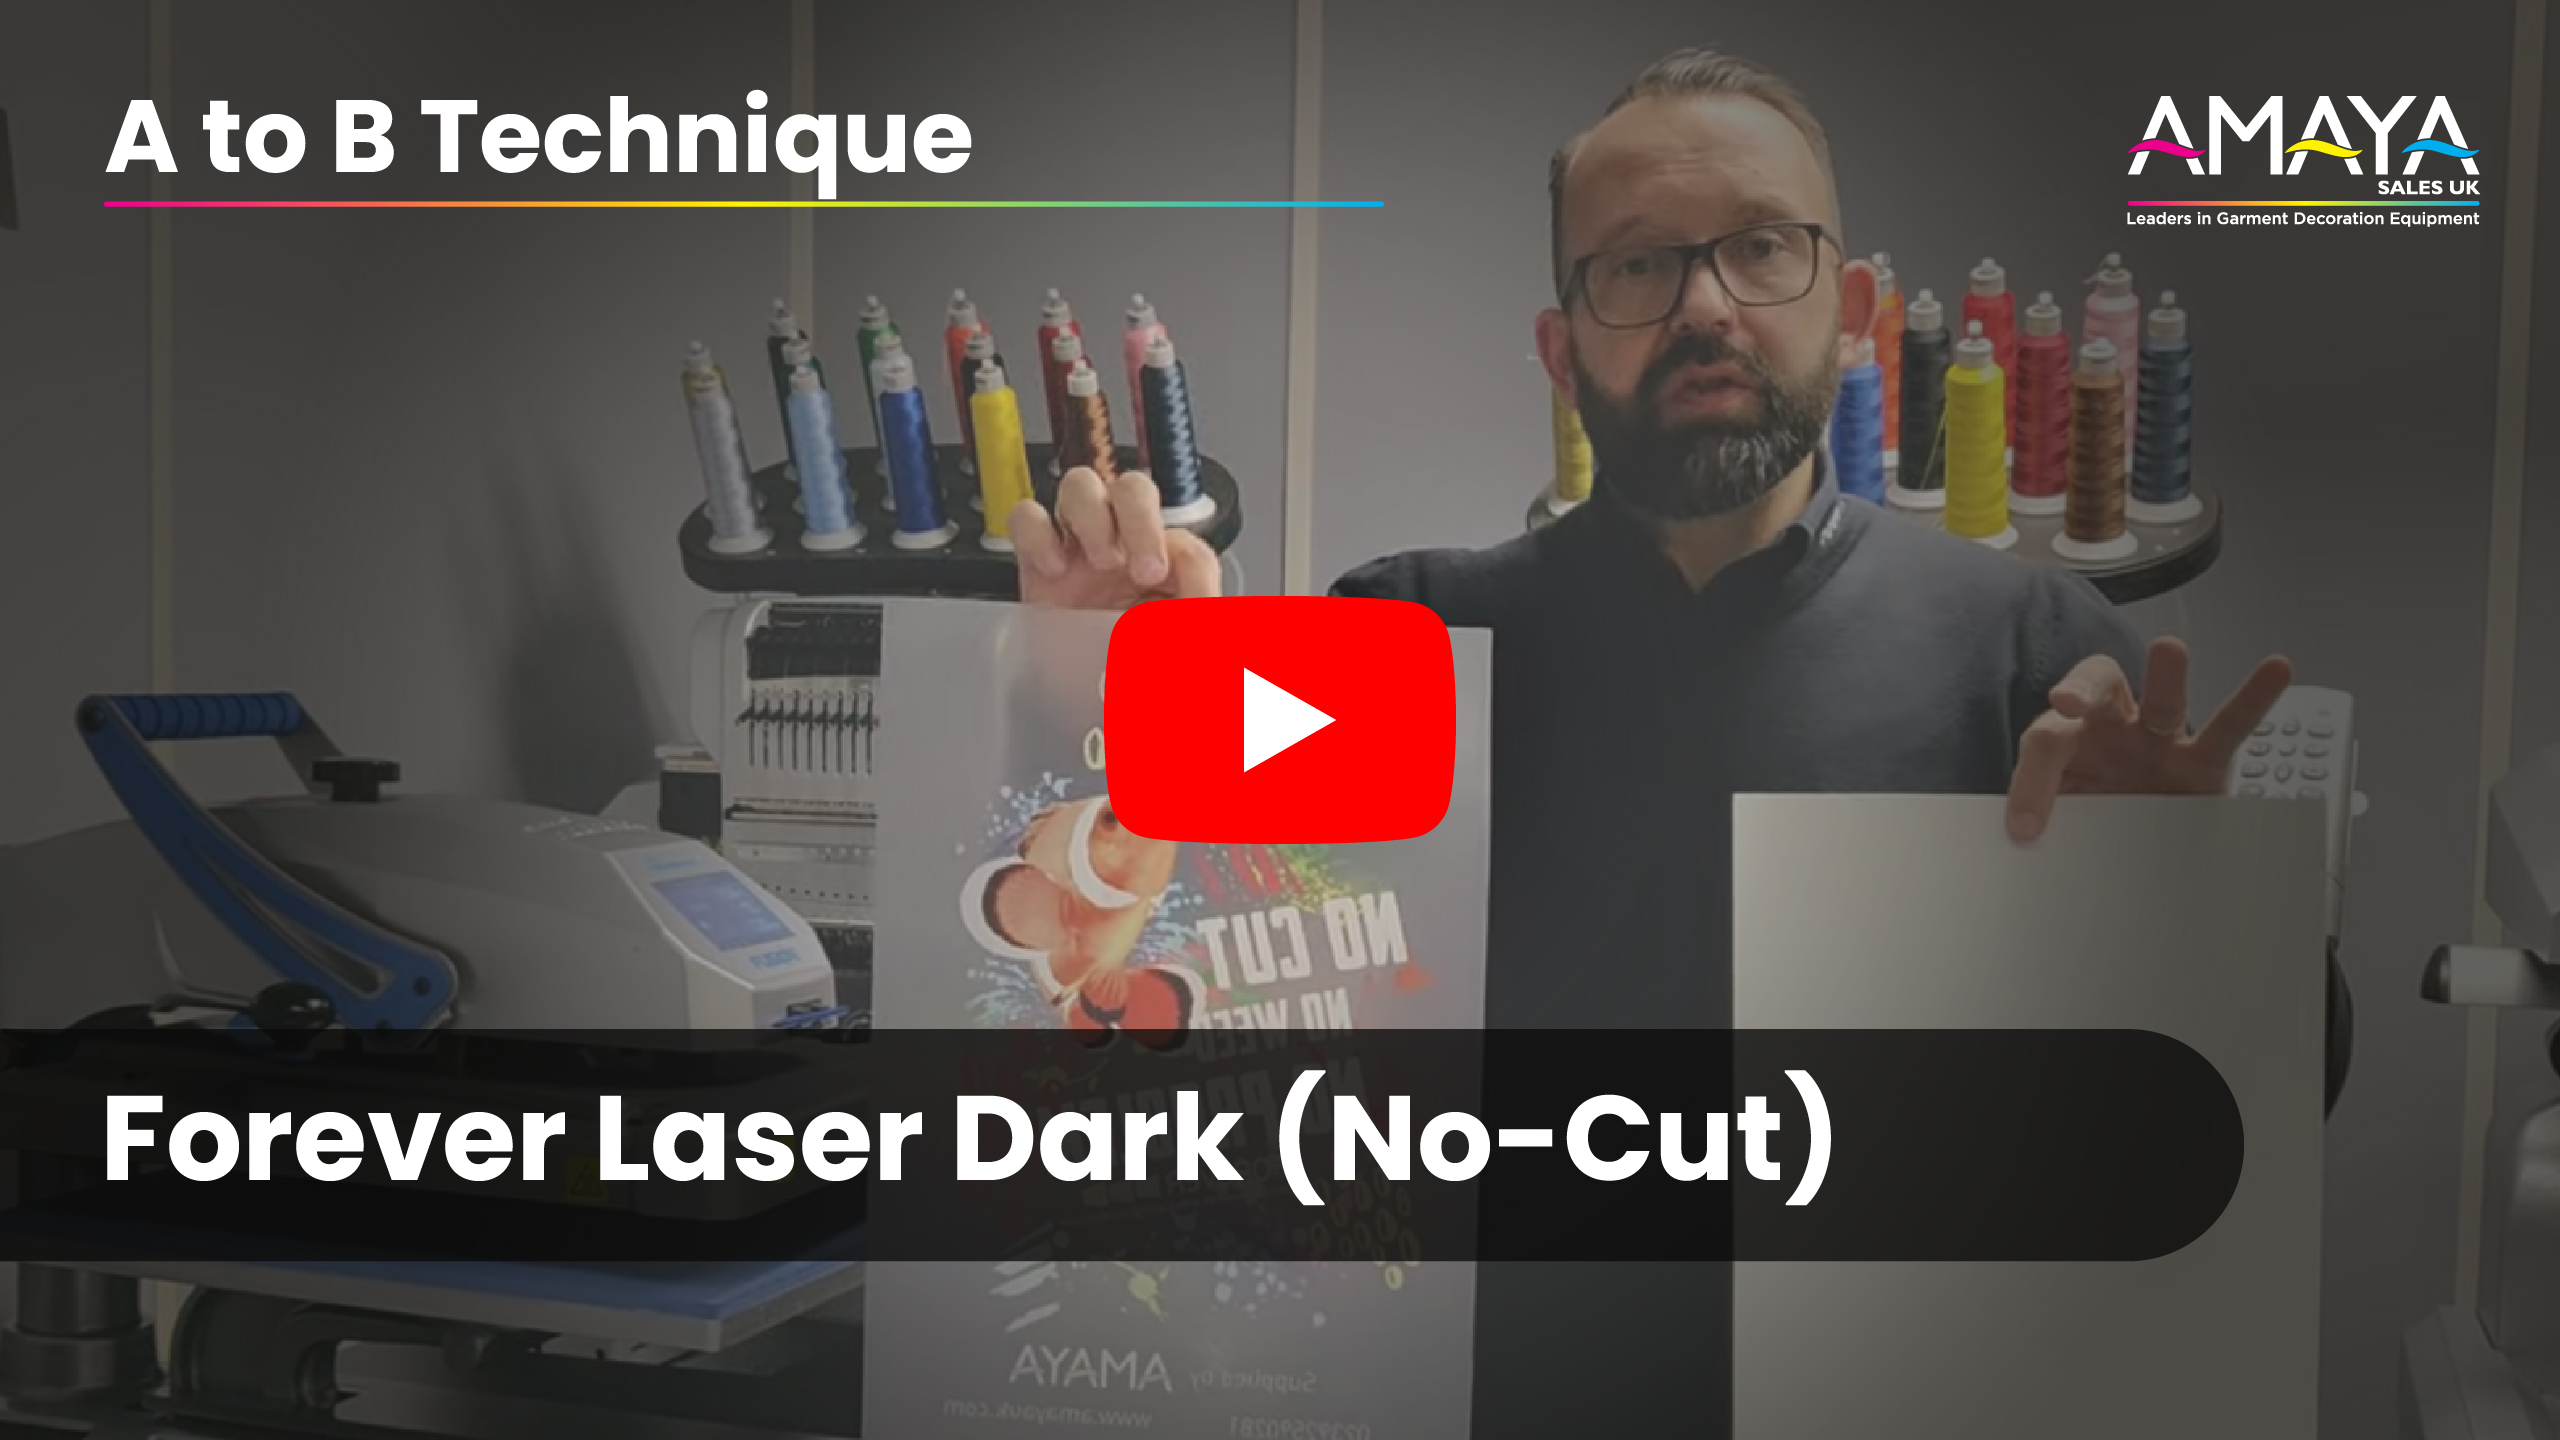 Forever Laser Dark No-Cut - A to B technique